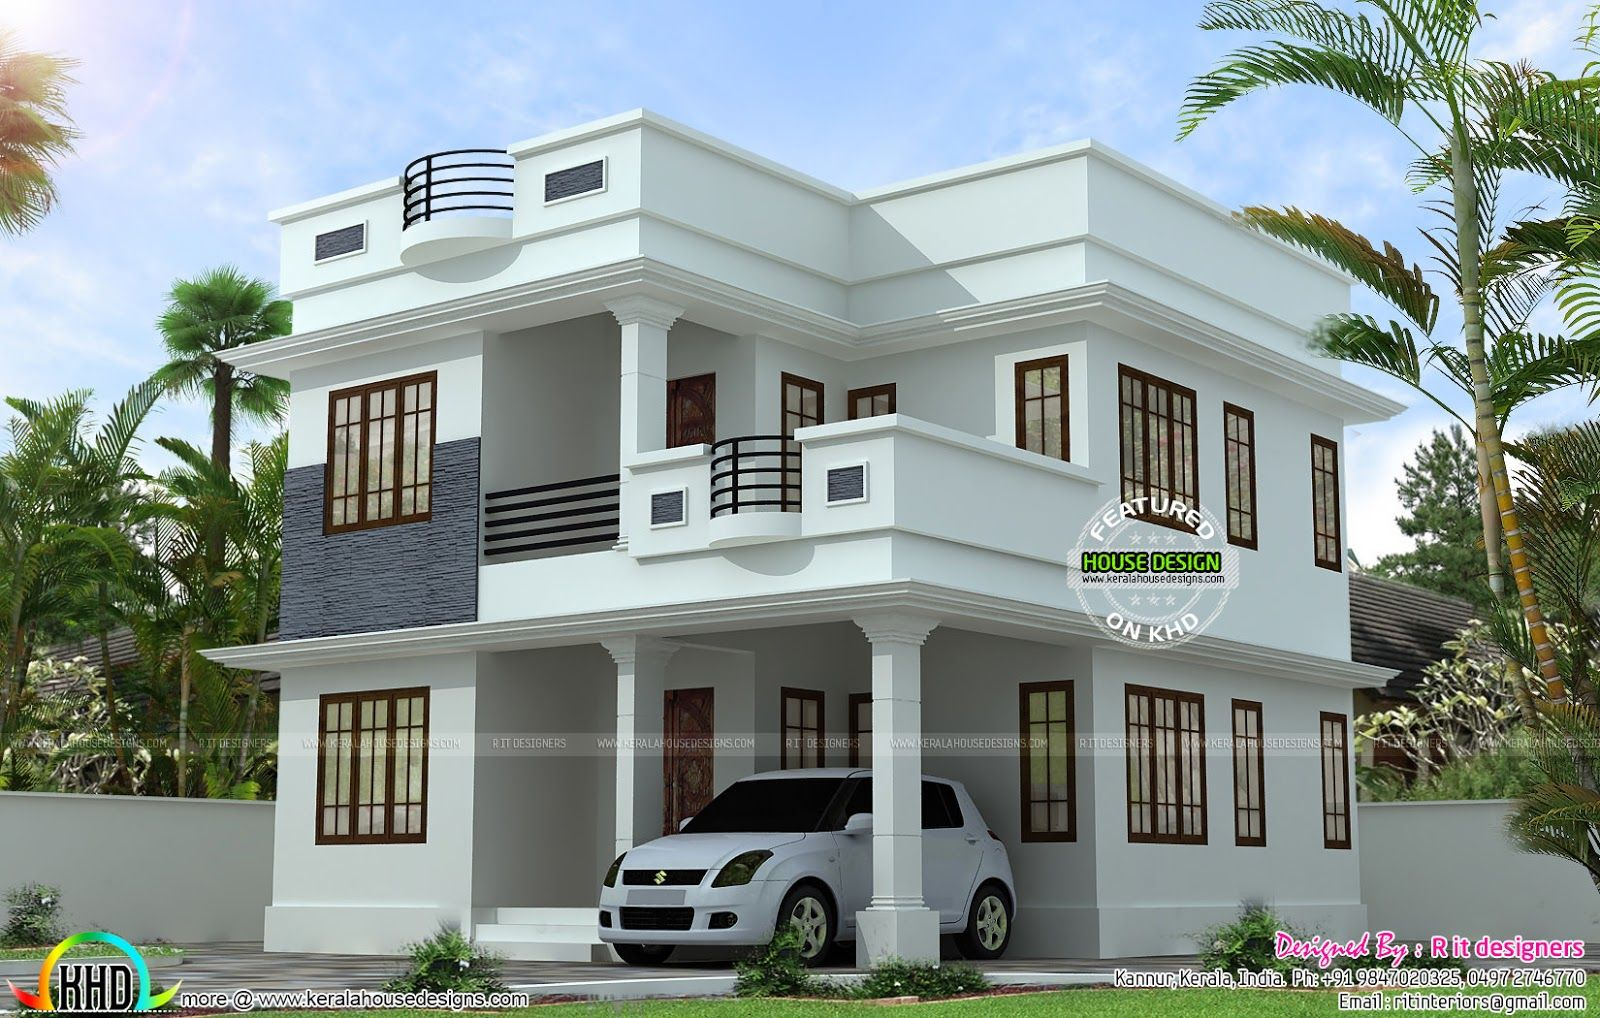 Home Design Picture